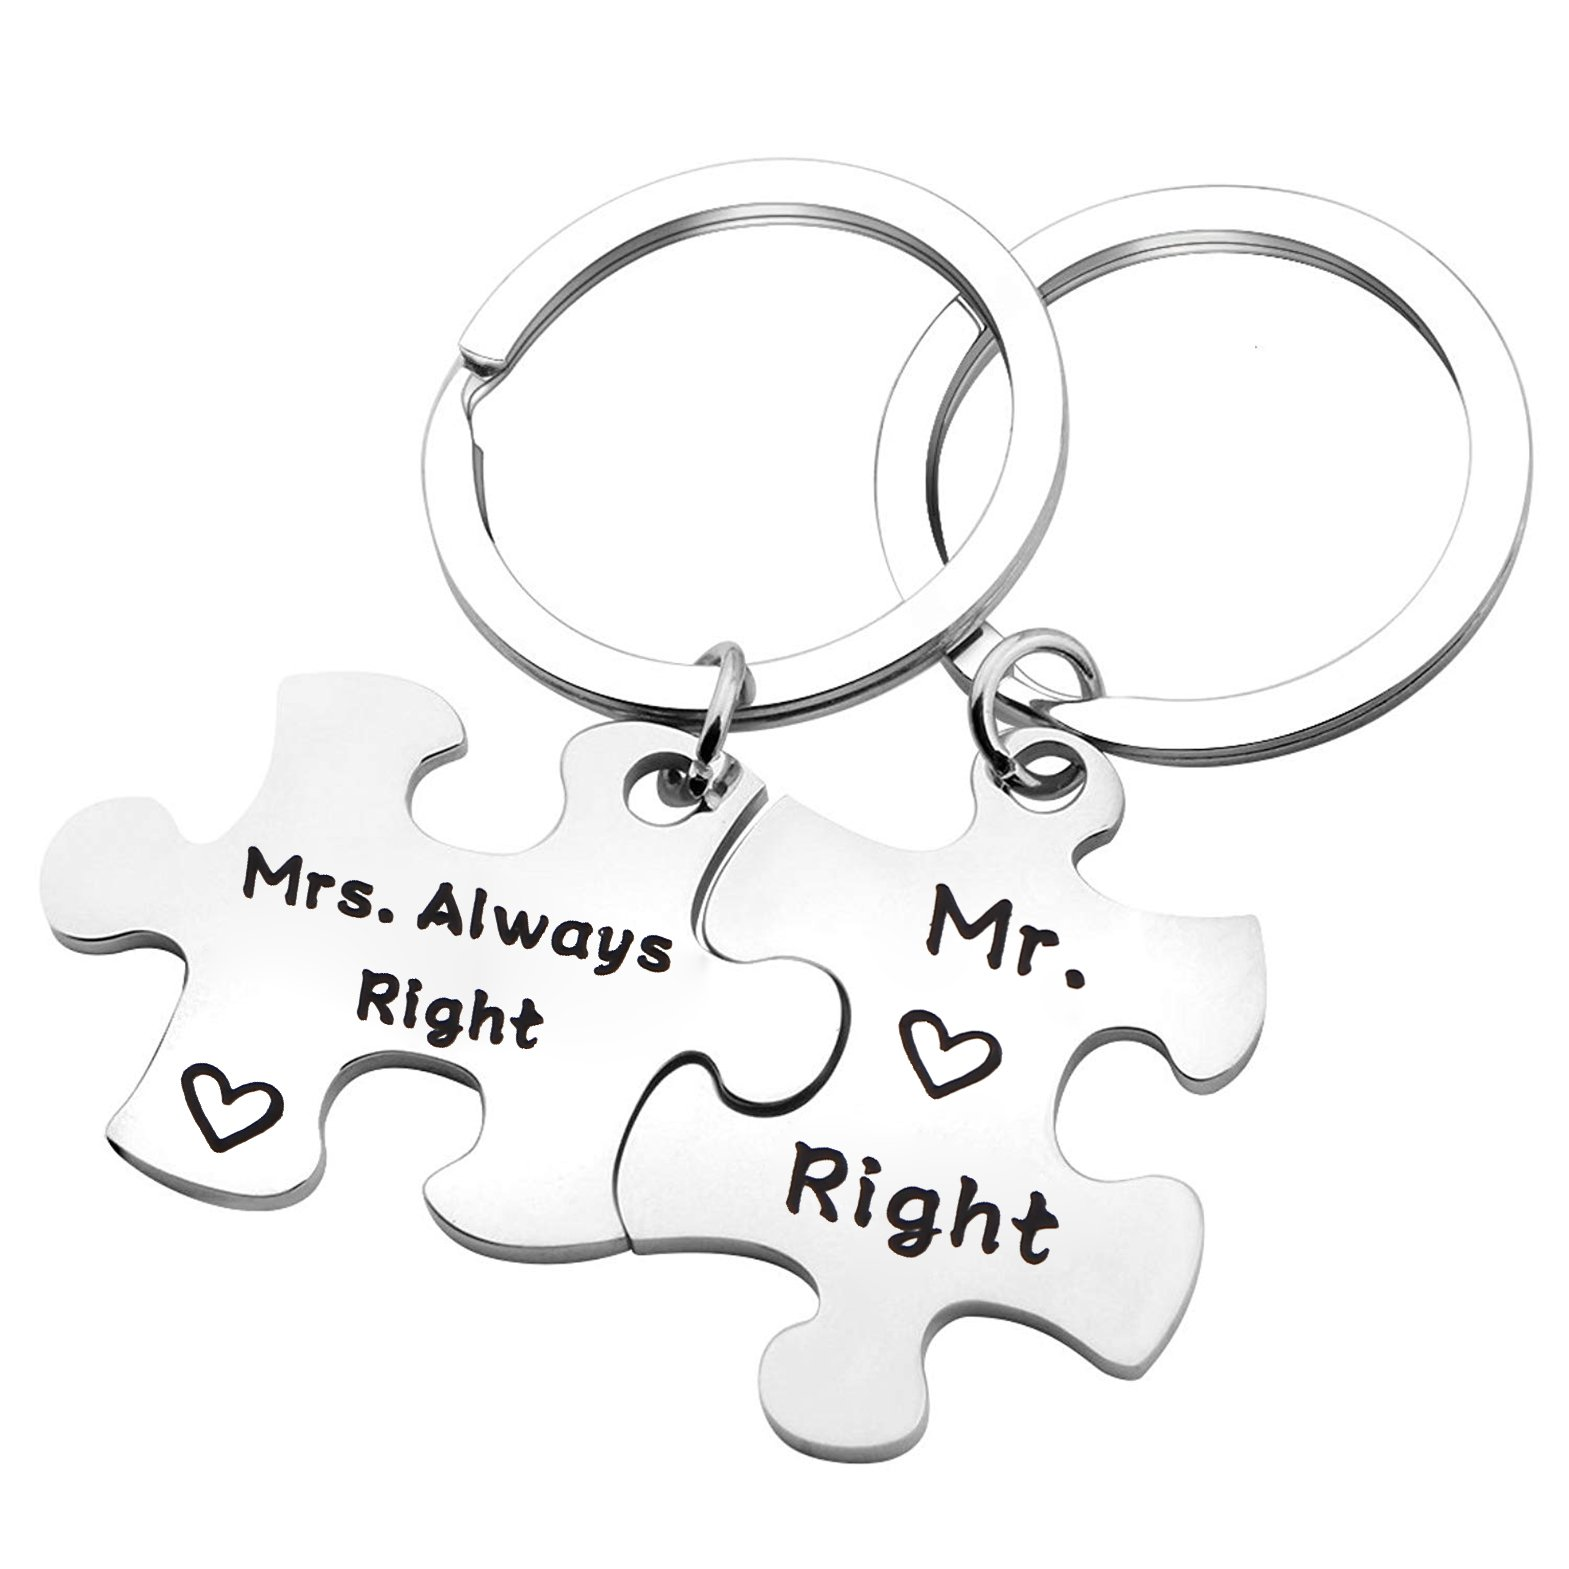 QIIER Couples Puzzle Keychain Mr. Right & Mrs. Always Right Wedding Gift Engagement Gift for Couples (Silver)